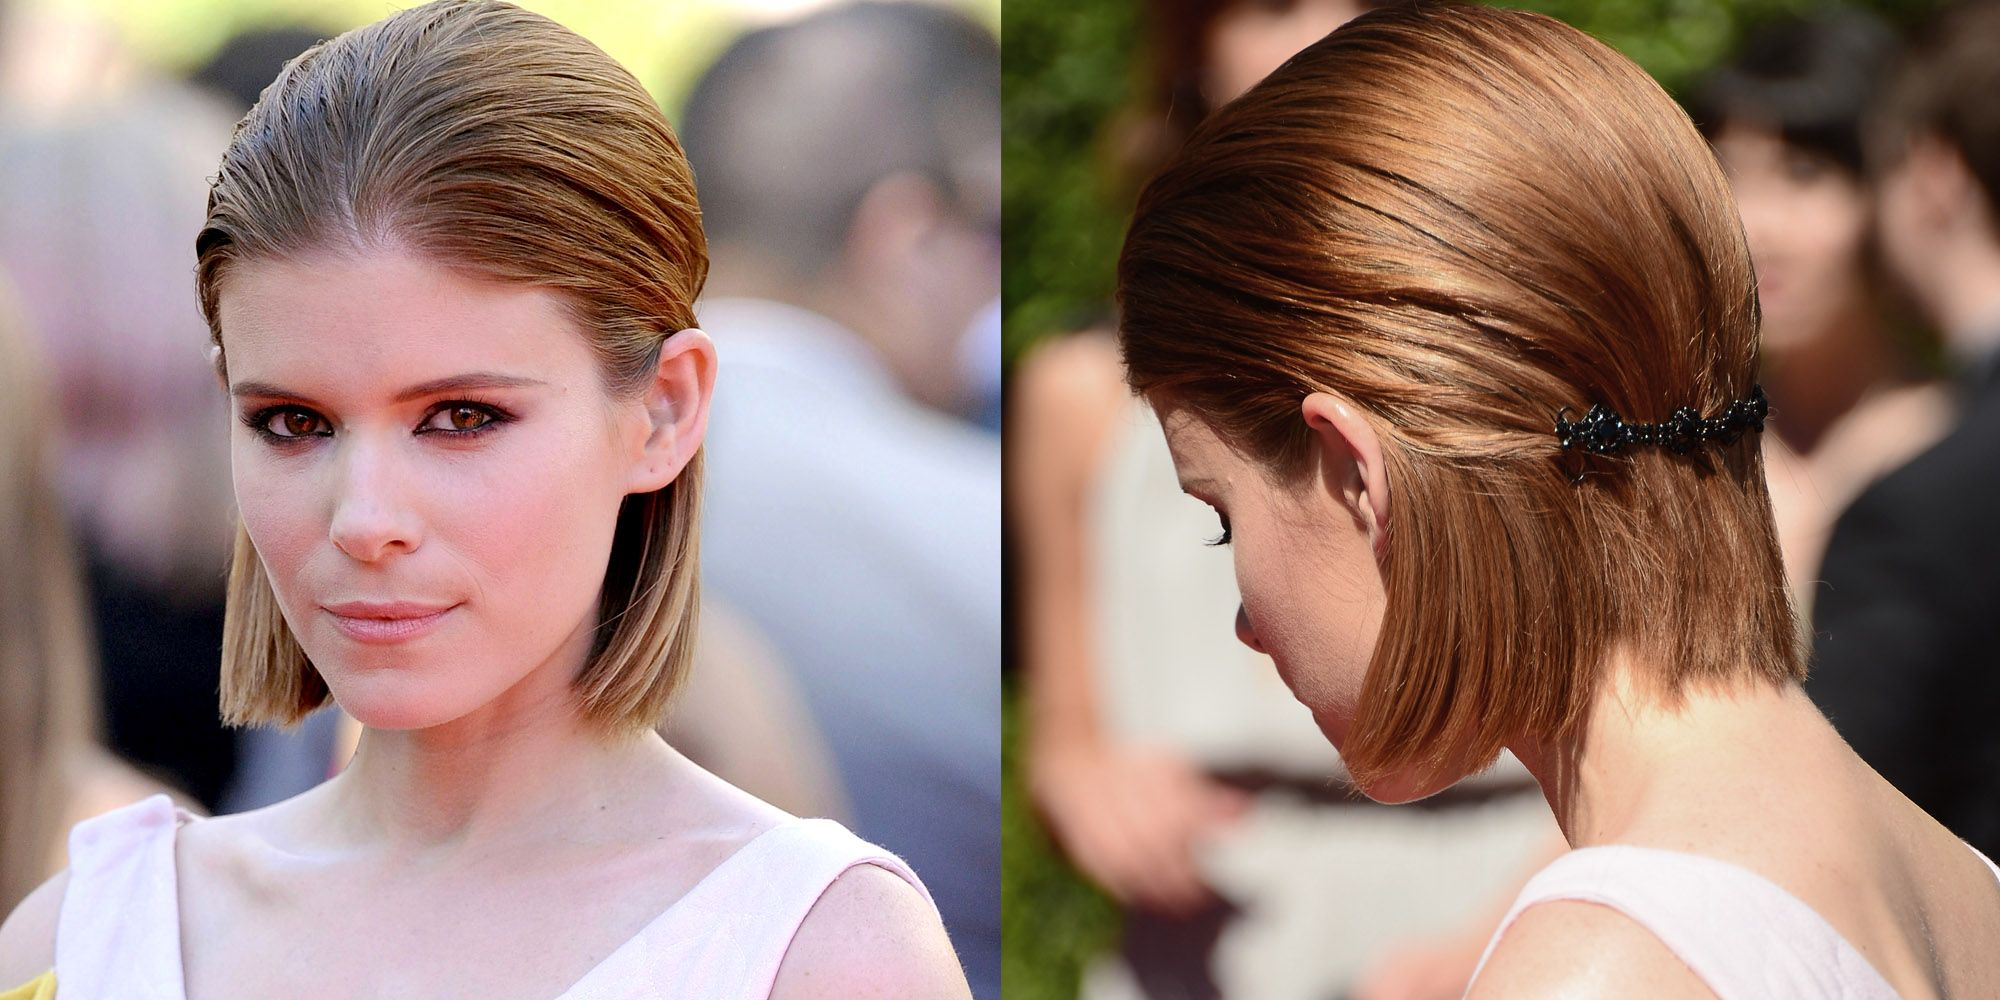 Short Hair Style Photos by wearticles.com